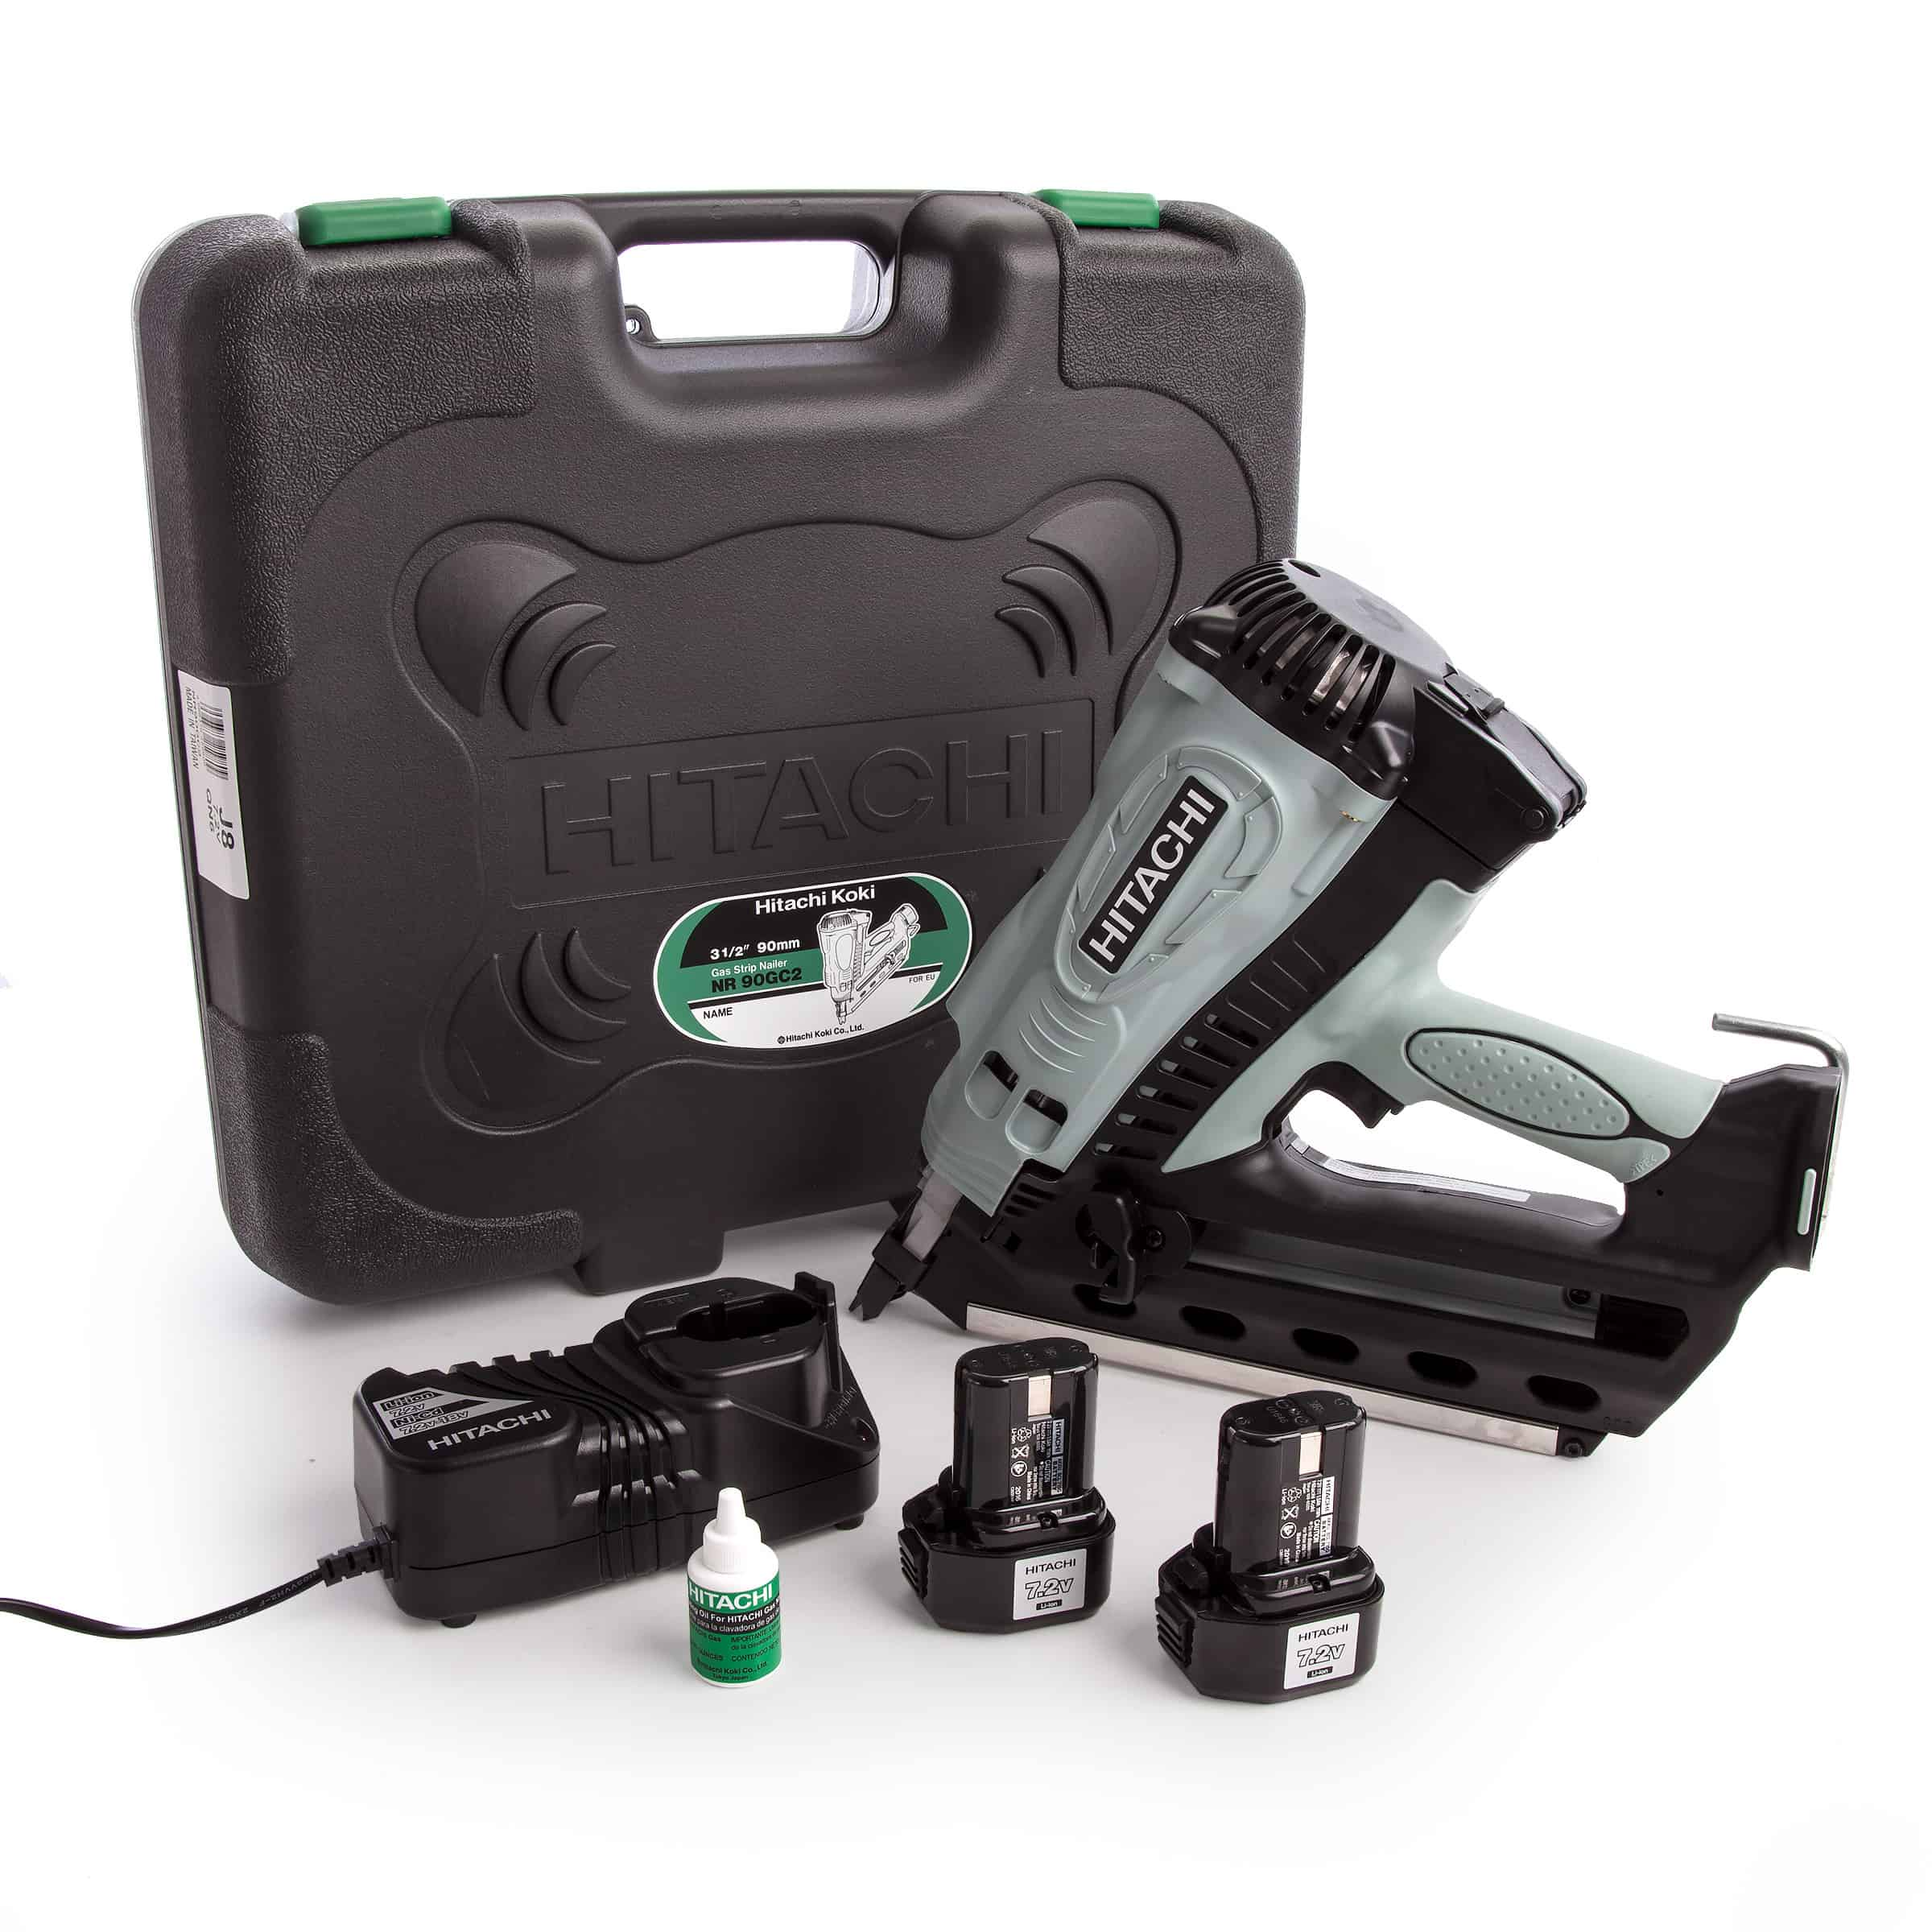 Best Nail Gun Our Top 3 Review Toolsreview